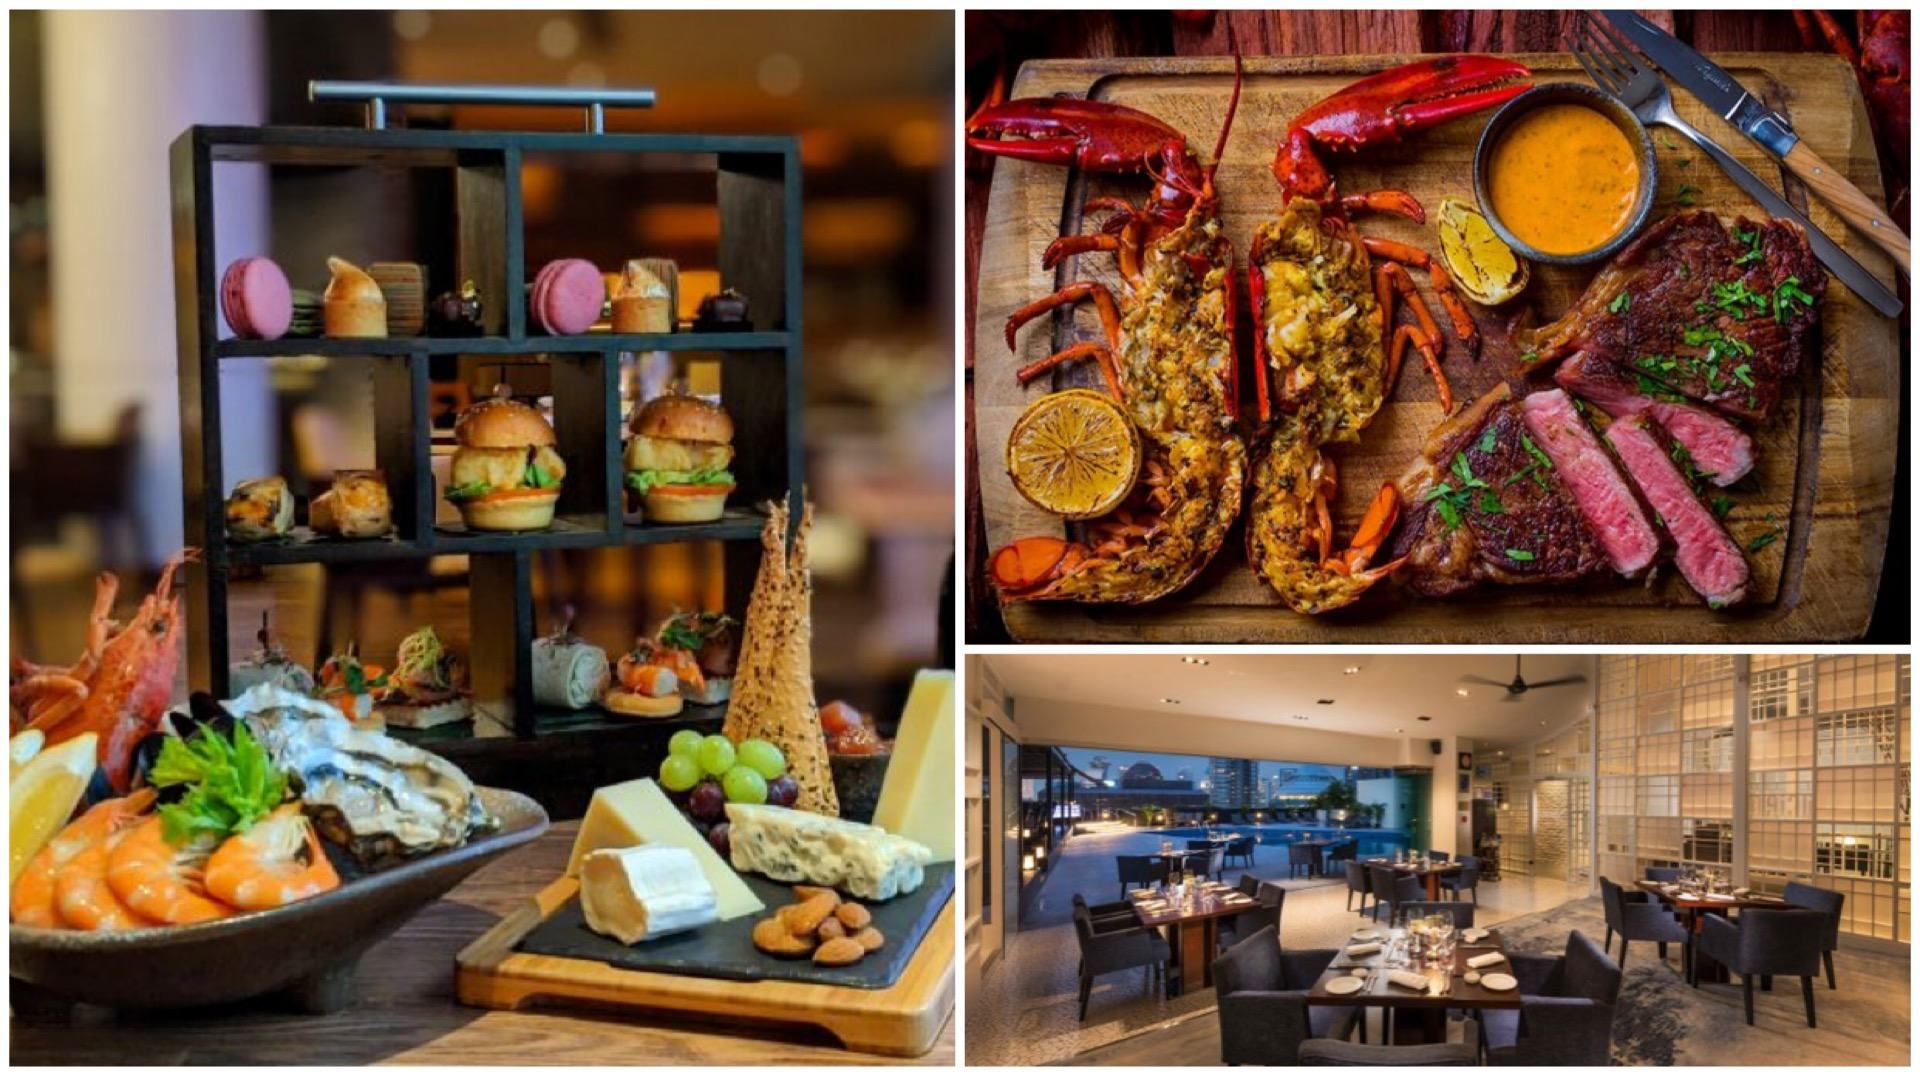 Utterly mouth-watering foodie staycations are yours to, ahem, savour at Hilton Singapore - whether you're craving a seafood-themed high tea or a meaty steak-cation.